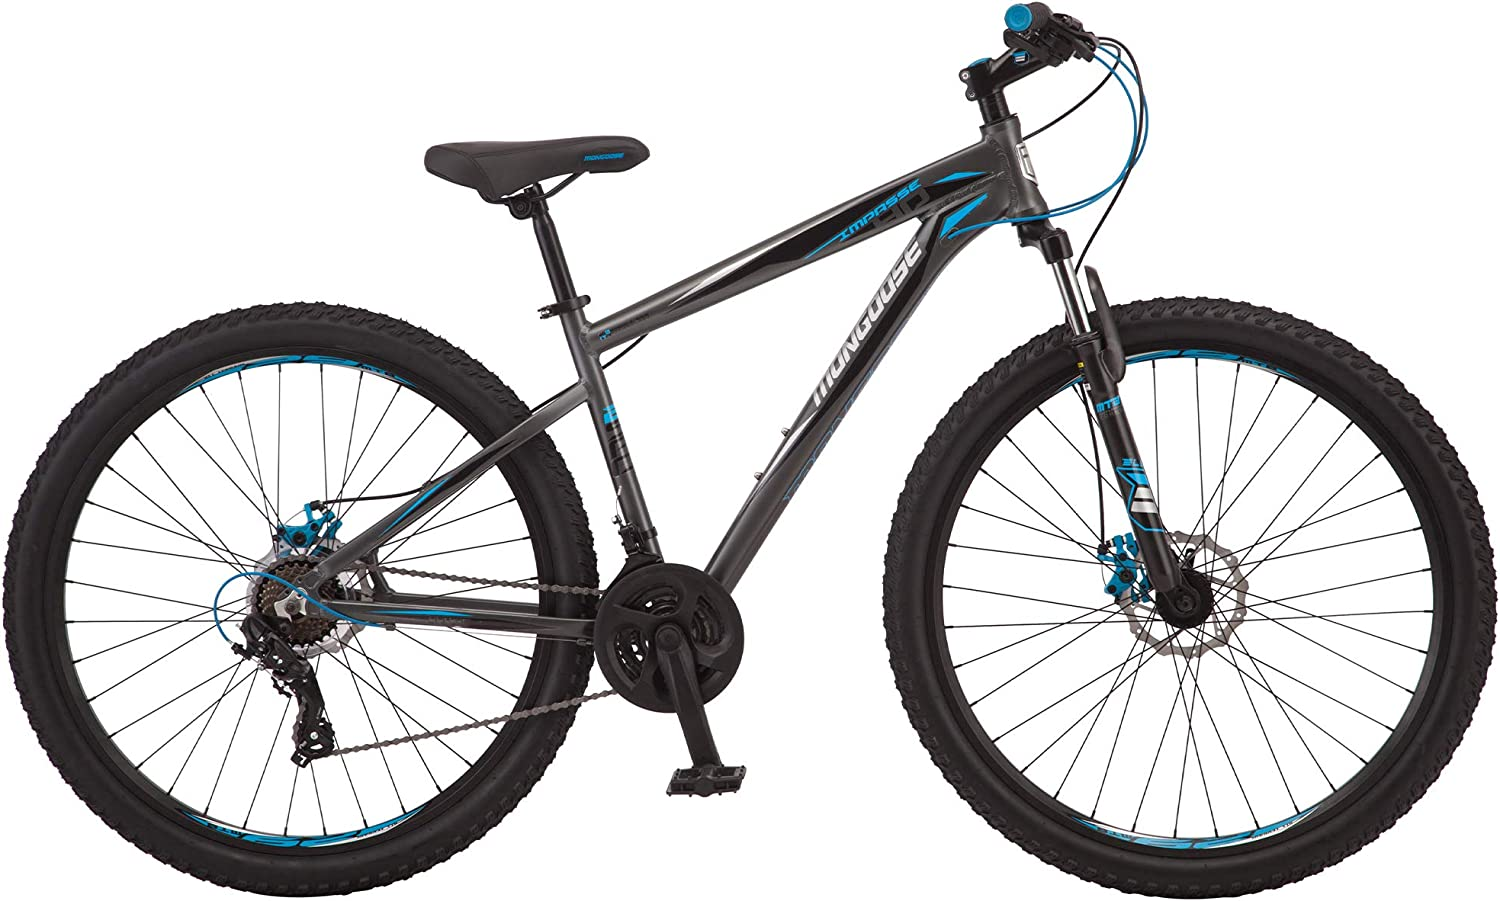 71DjAqUXA1L. AC SL1500 15 Best Cheap Mountain Bikes - Compare Prices & Features